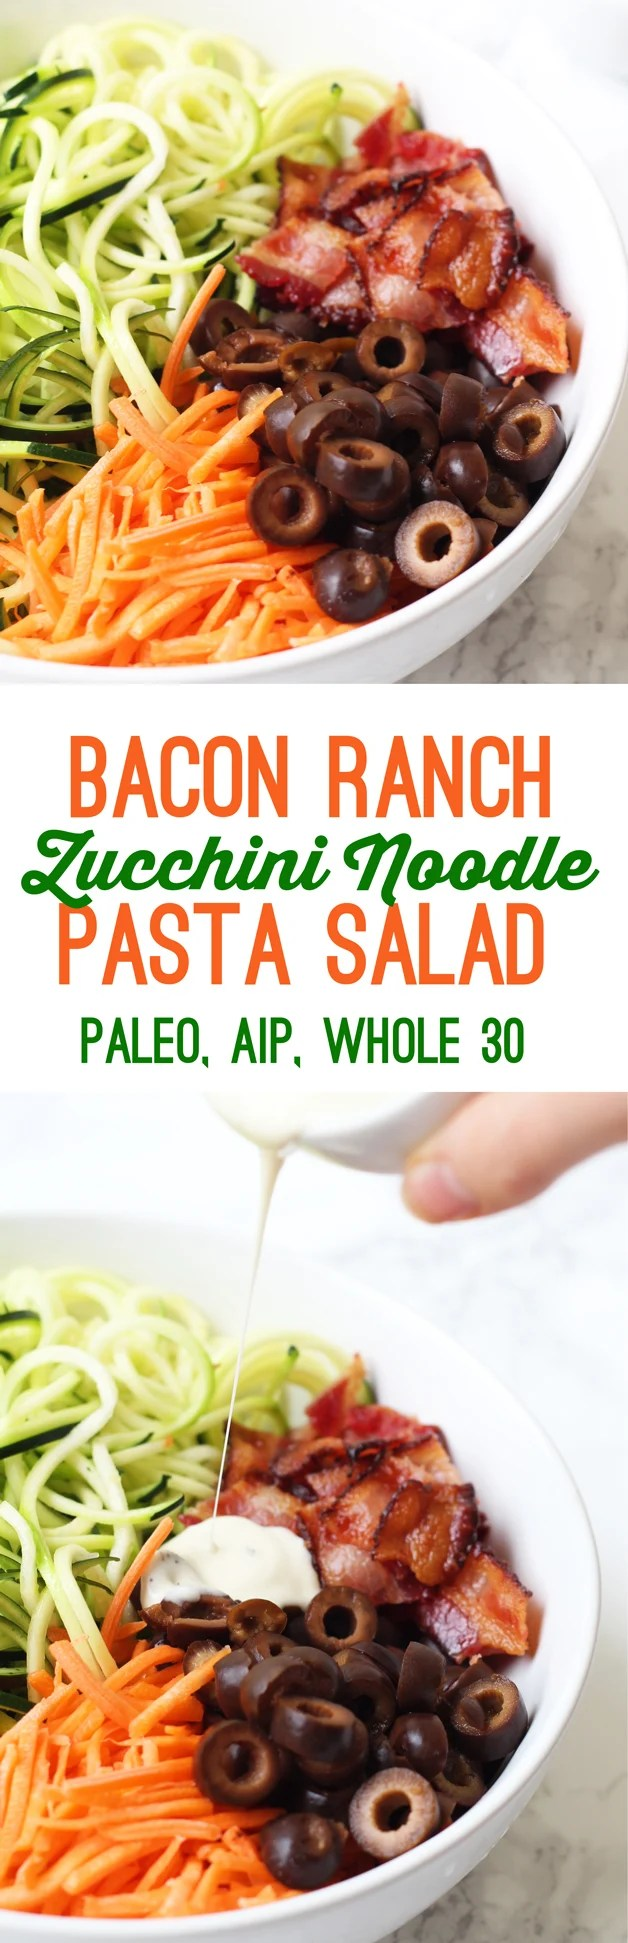 Bacon Ranch Zucchini Noodle Pasta Salad (Paleo, AIP, Whole 30)